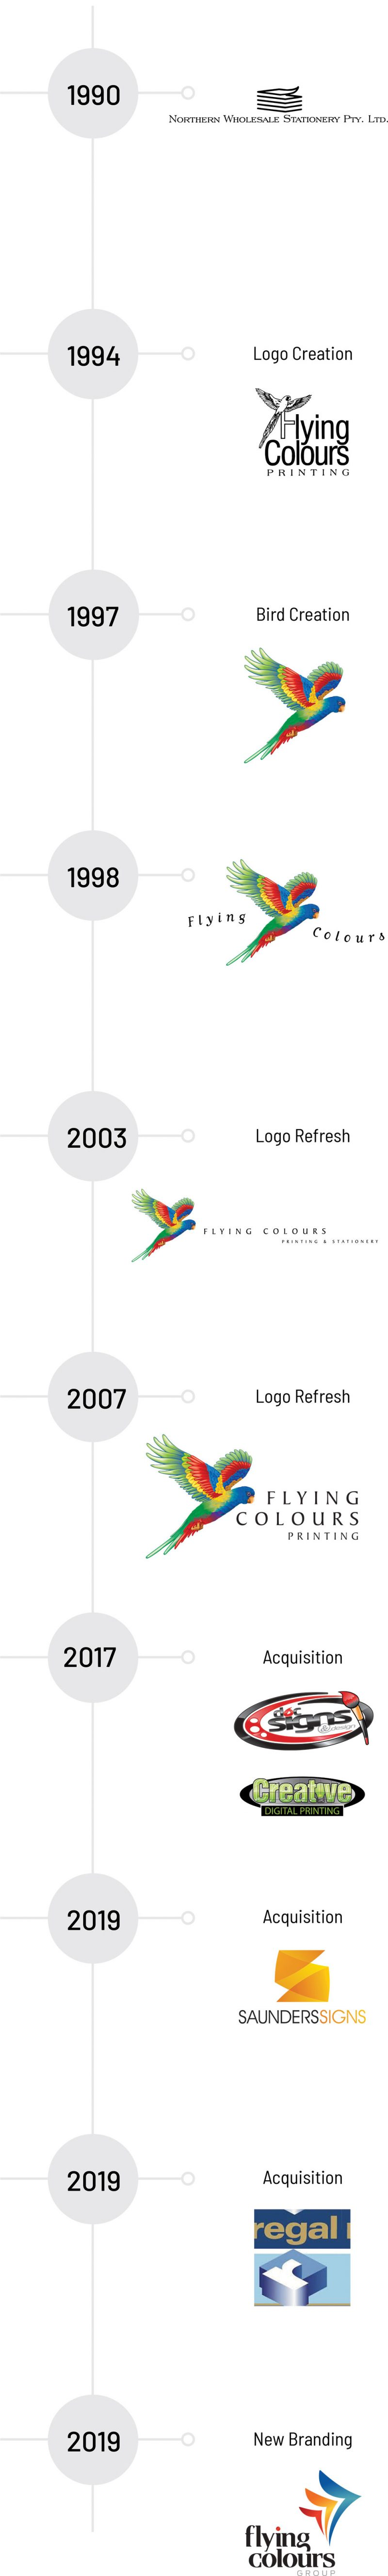 Flying Colours Timeline